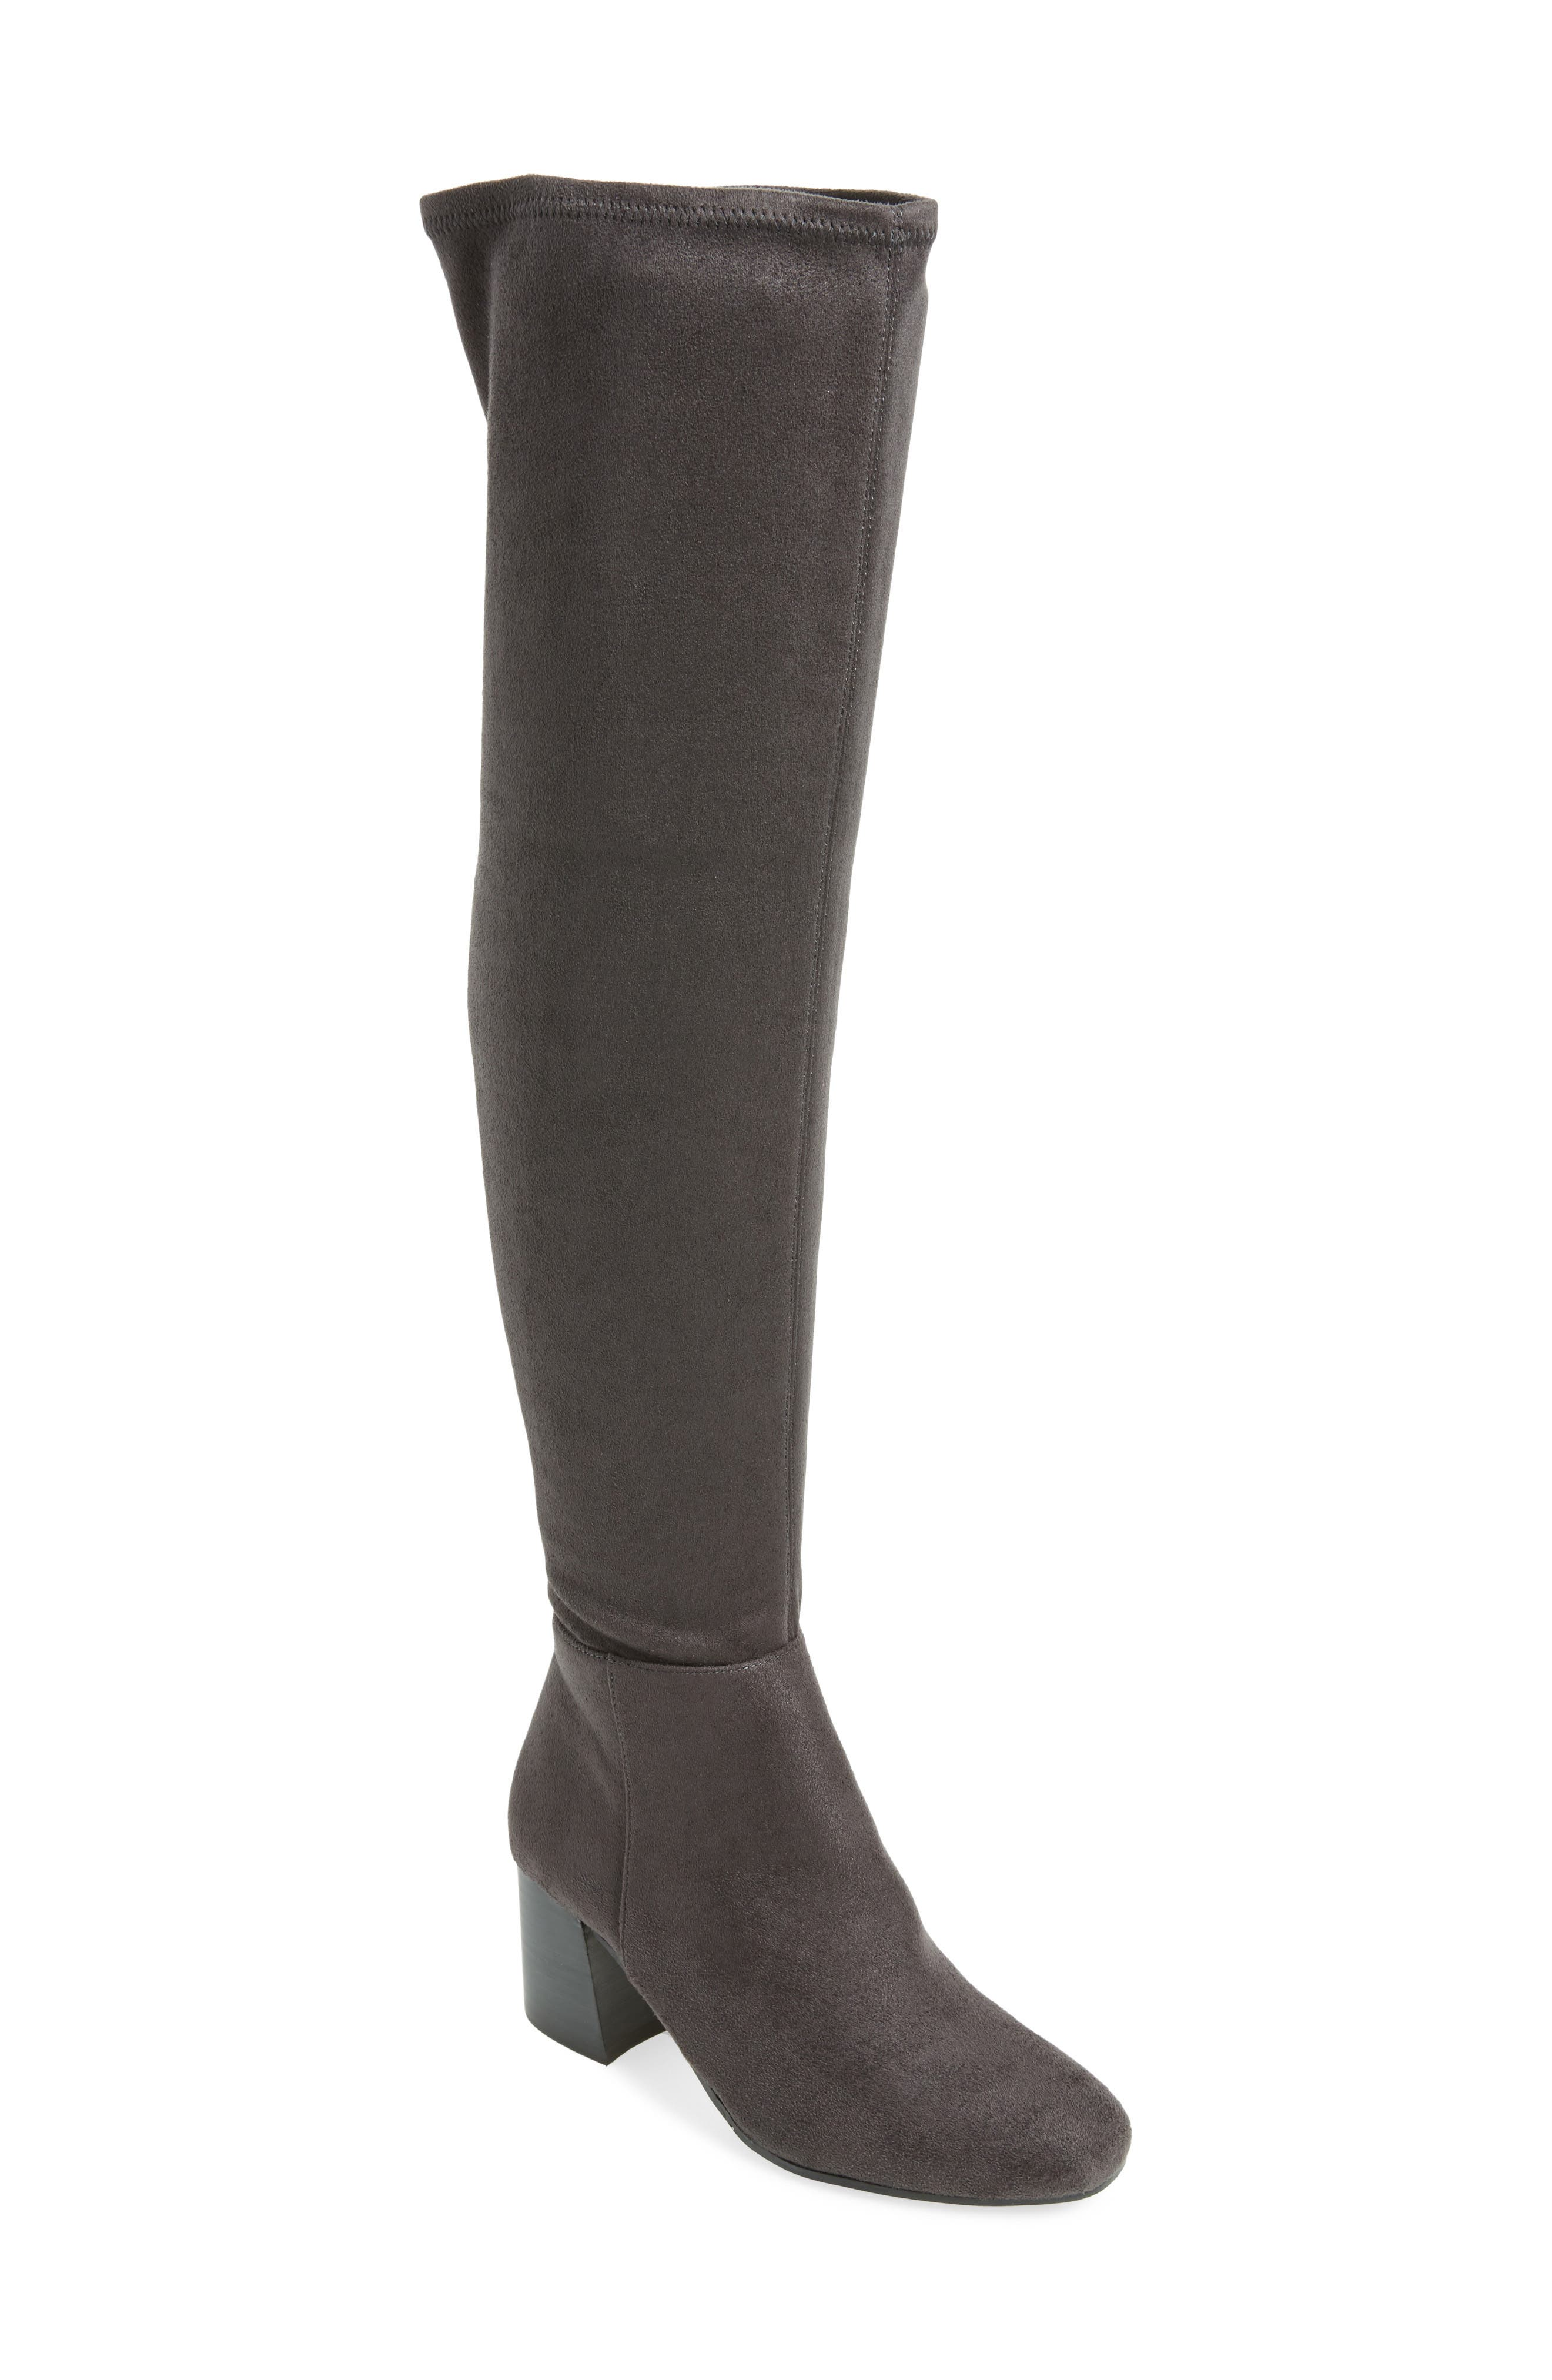 Alternate Image 1 Selected - Vince Camuto Kantha Over the Knee Boot (Women)